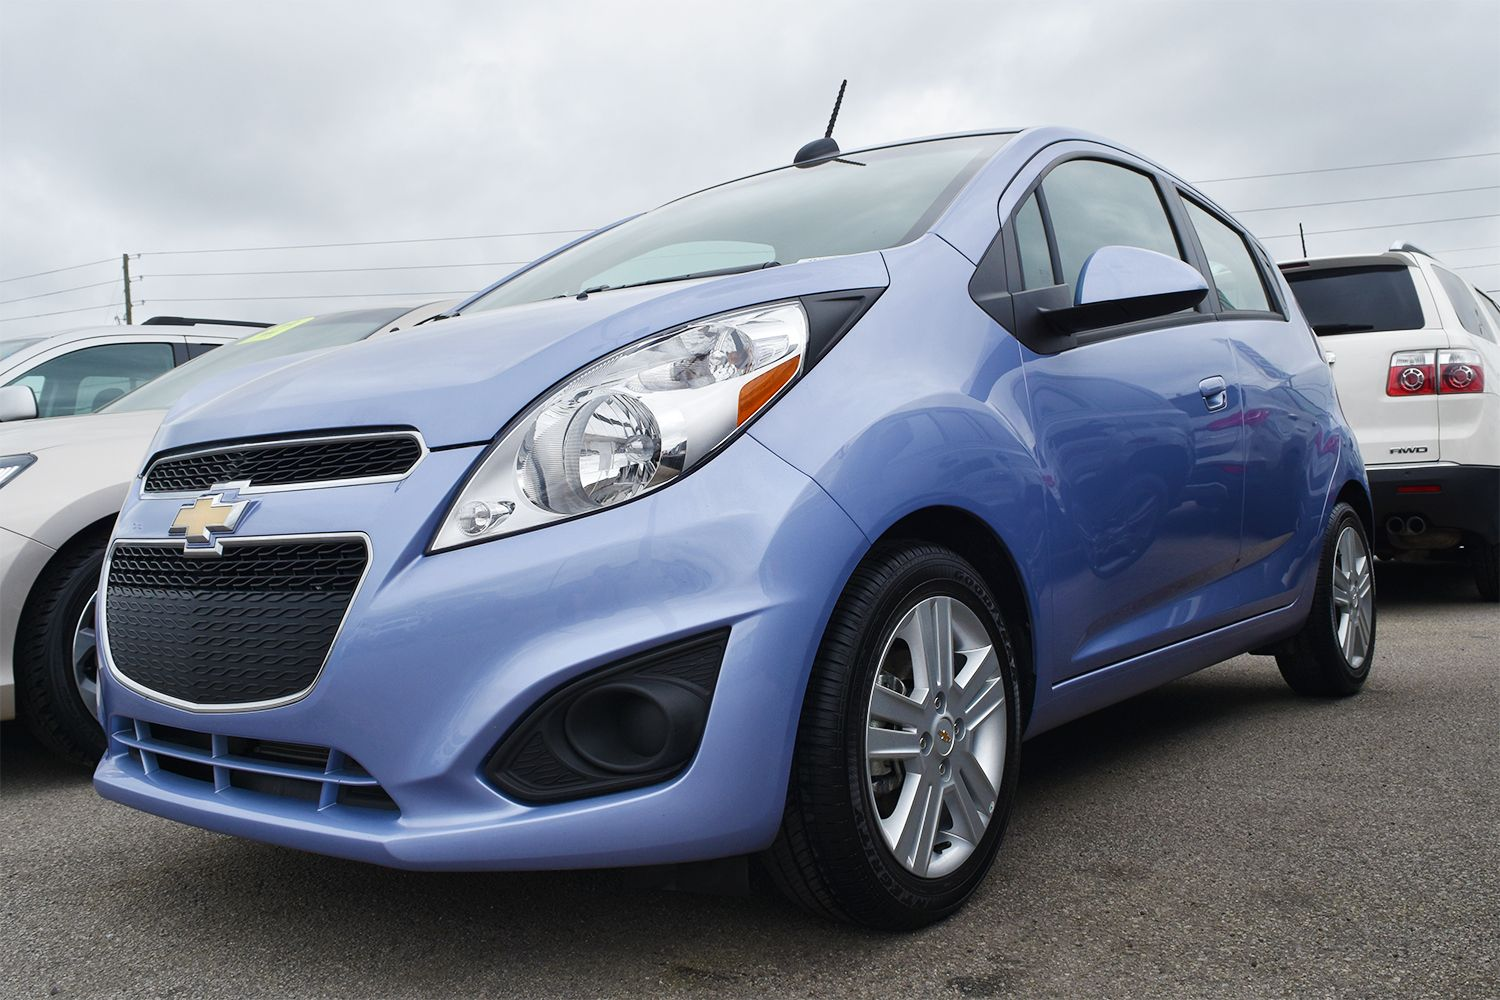 We Have Plenty Of Pre Owned Vehicles Perfect For The Spring Including This 2015 Chevy Spark That Resembles An Easter Egg Chevy Bmw Car Vehicles